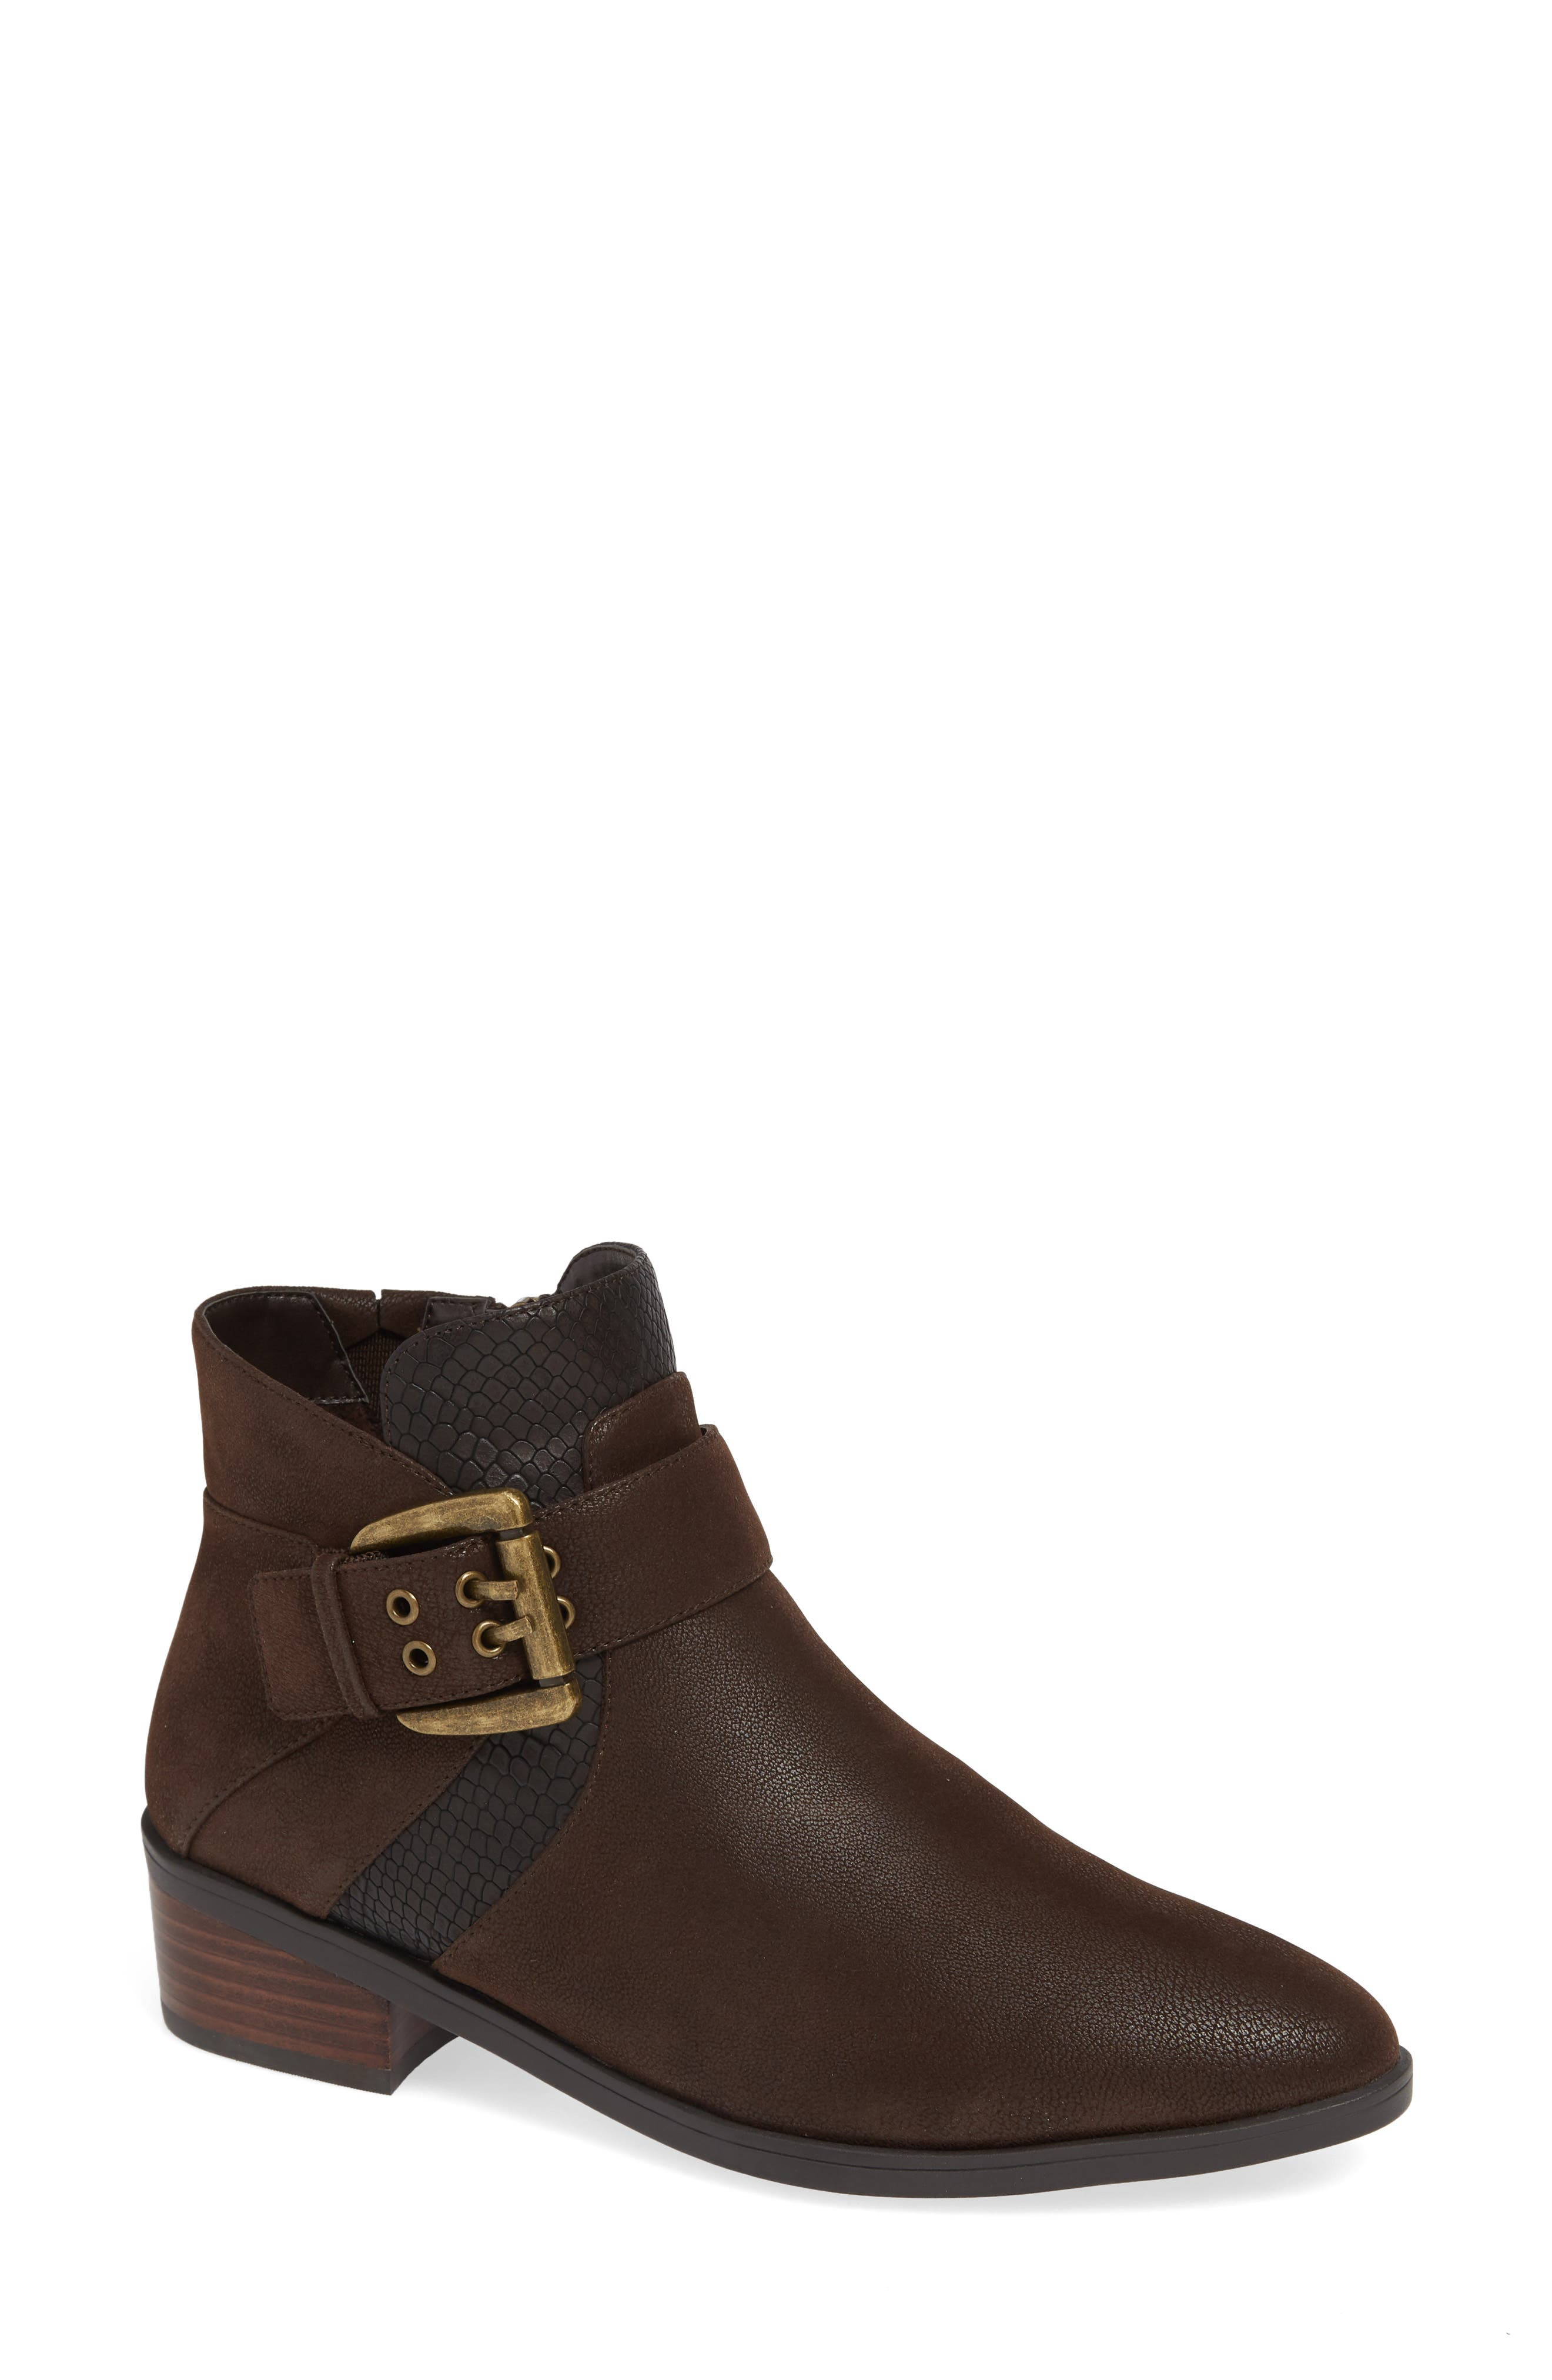 Honor II Bootie,                         Main,                         color, BROWN LEATHER